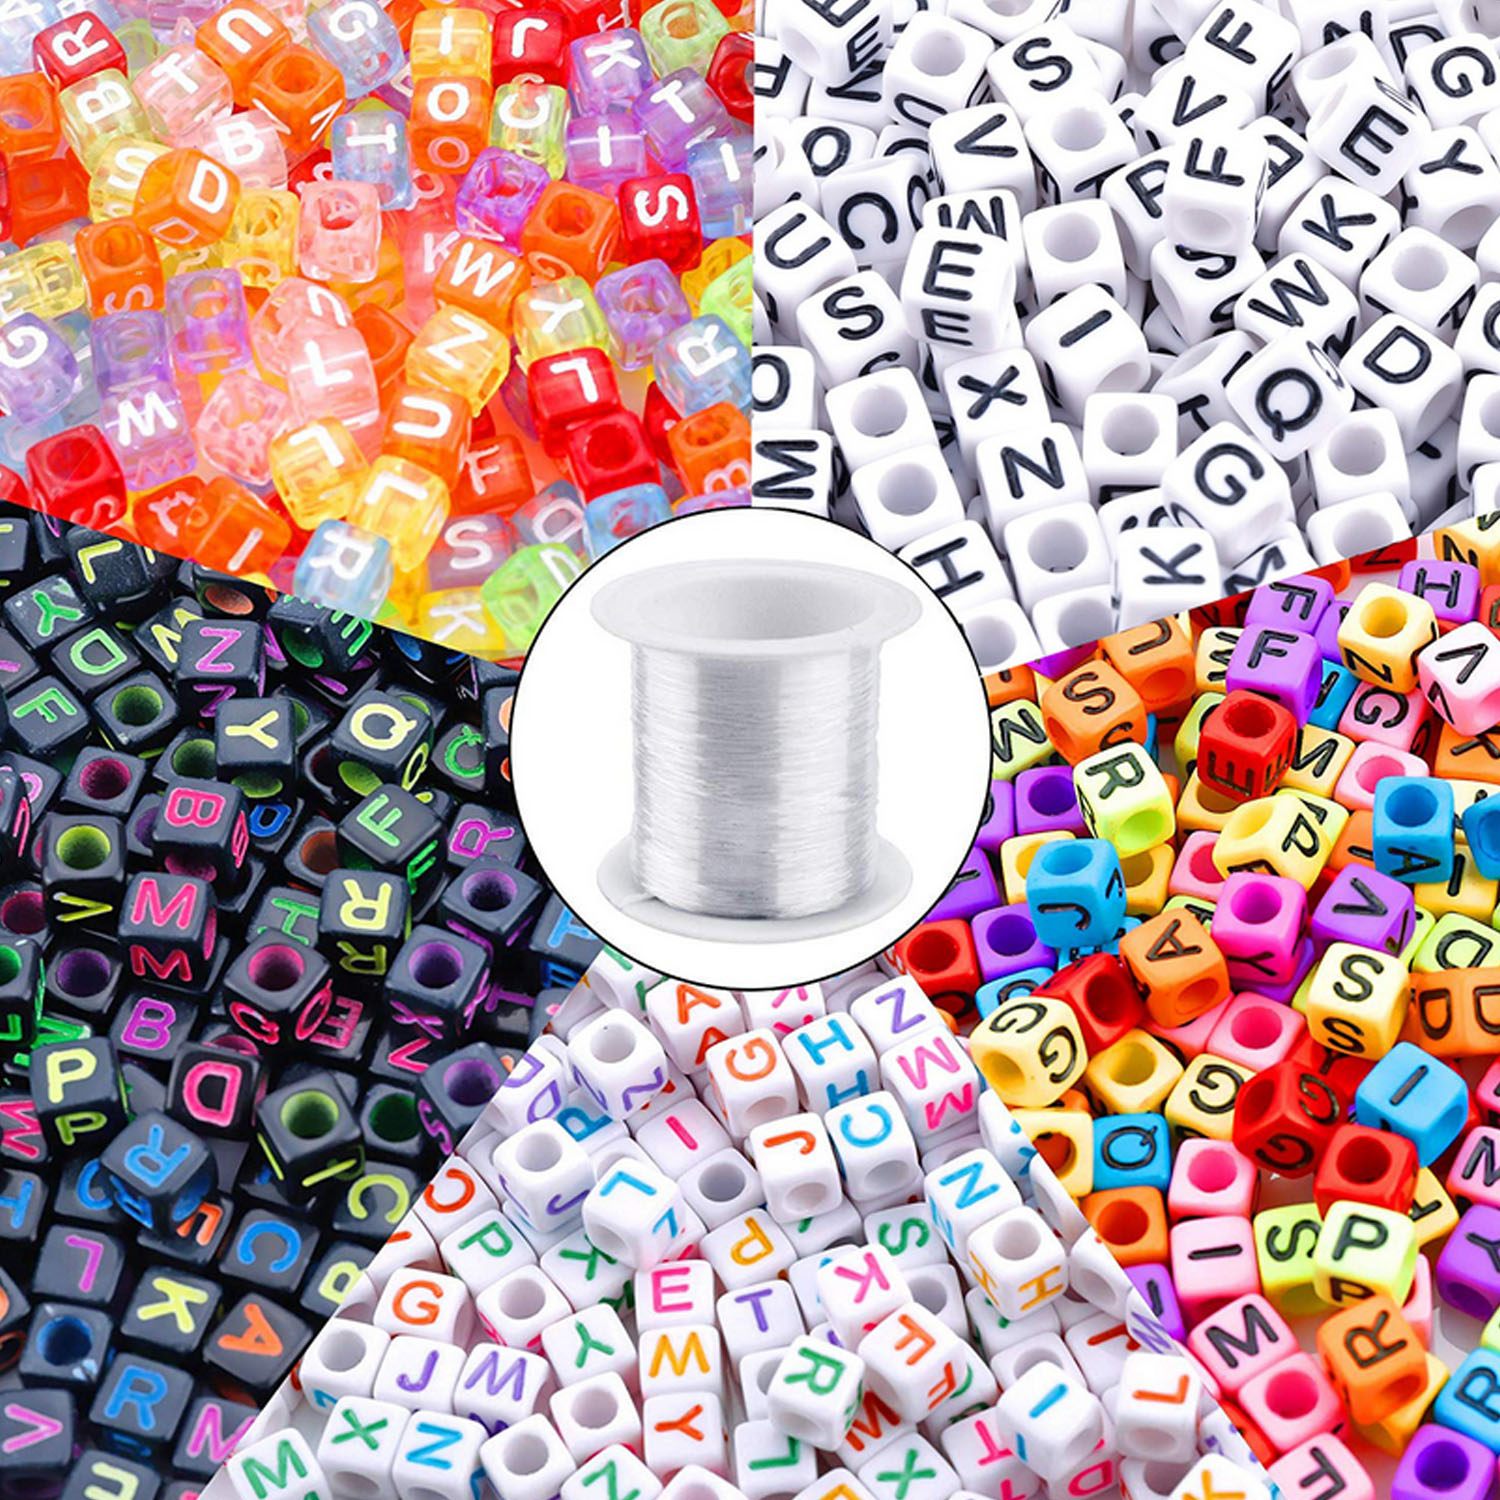 1400PCS Plastic Alphabet Letter Loose Beads With 1 Roll Thread For Kids Children Bracelets Necklaces Jewelry Making Supplies